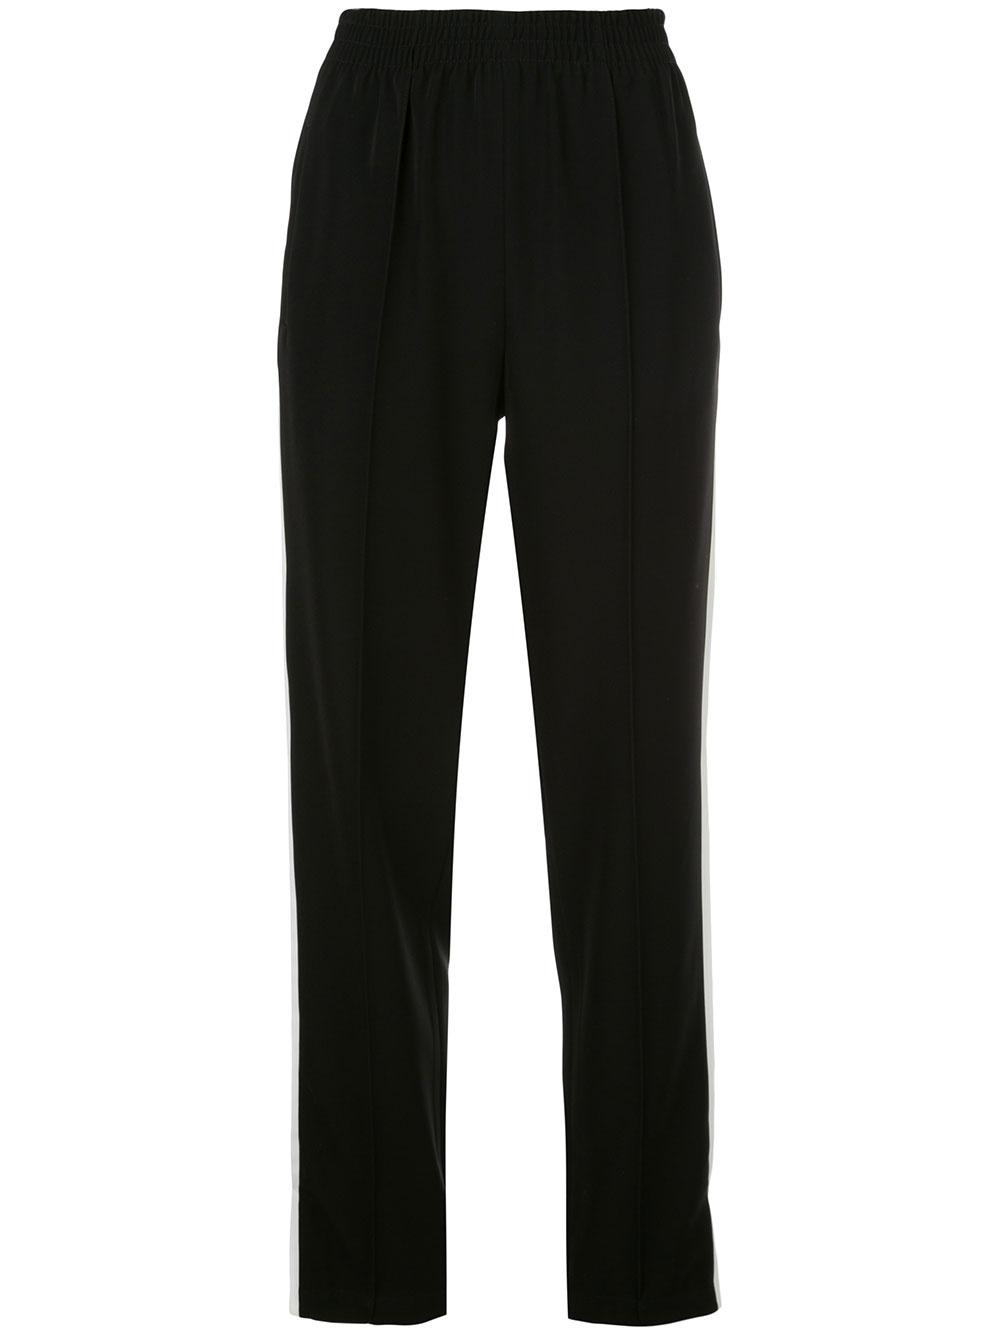 Rylie Track Pant